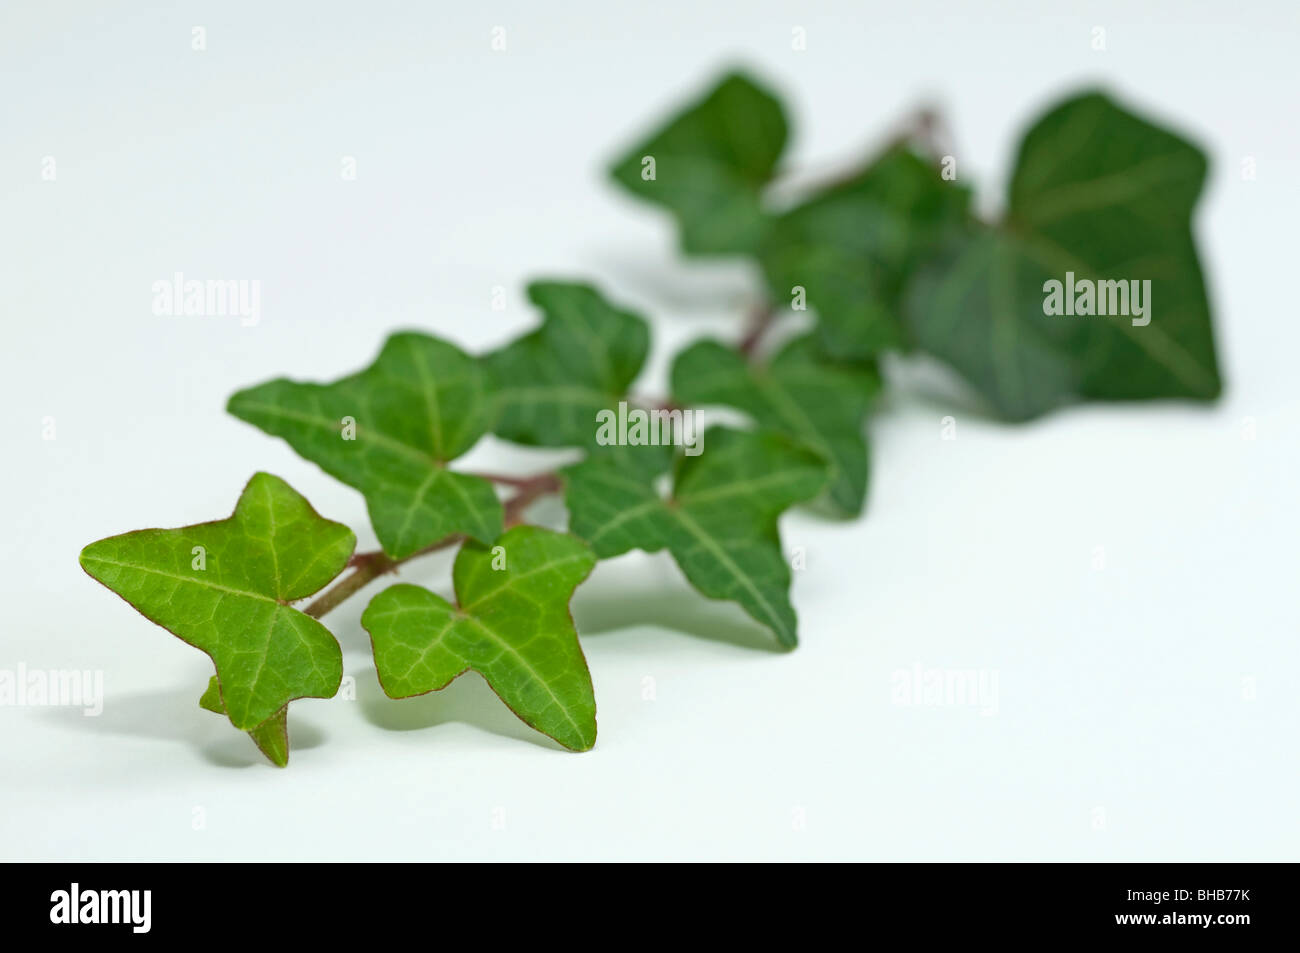 Common Ivy, English Ivy (Hedera helix), twig, studio picture. - Stock Image